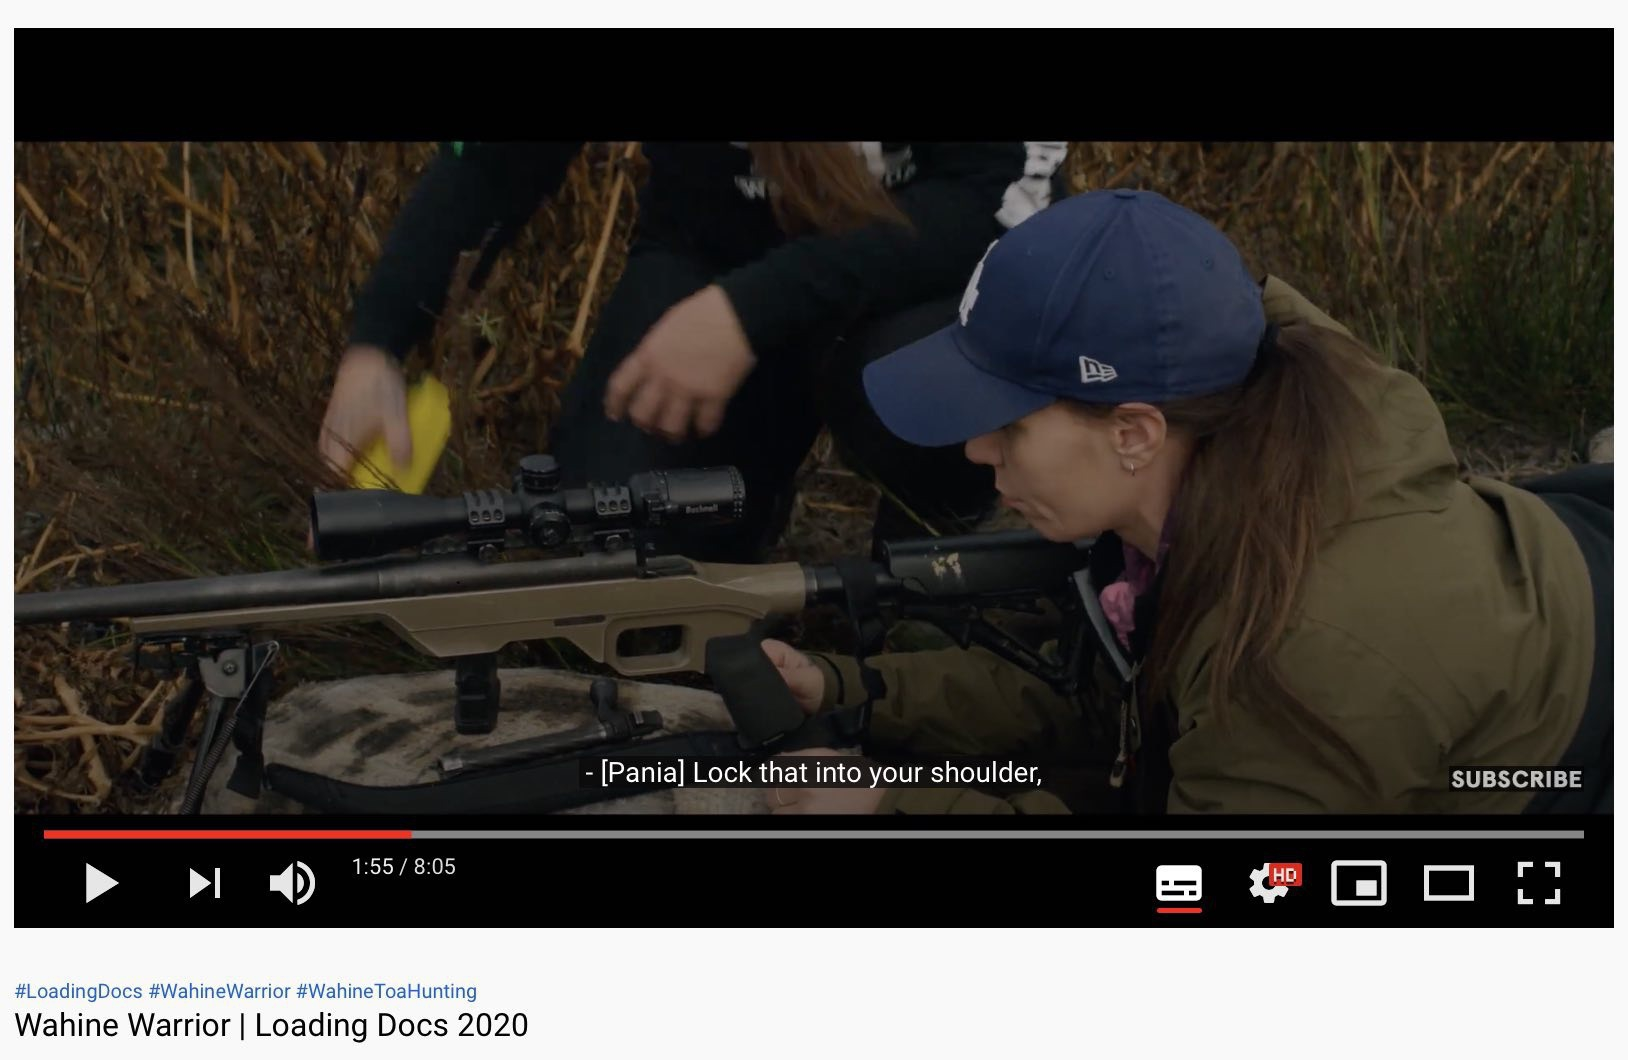 Still from the video showing a woman learning to use a hunting rifle.